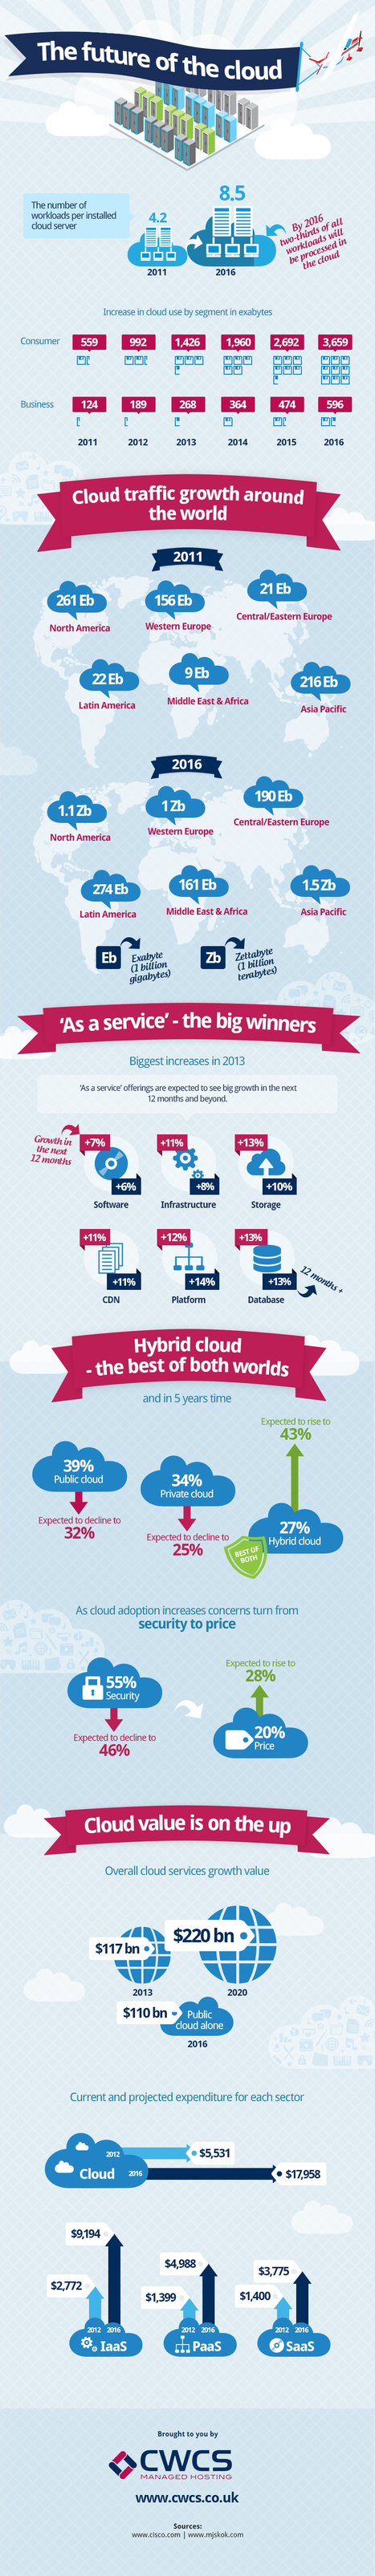 INFOGRAPHIC: The Future Of The Cloud | Cloud Central | Scoop.it